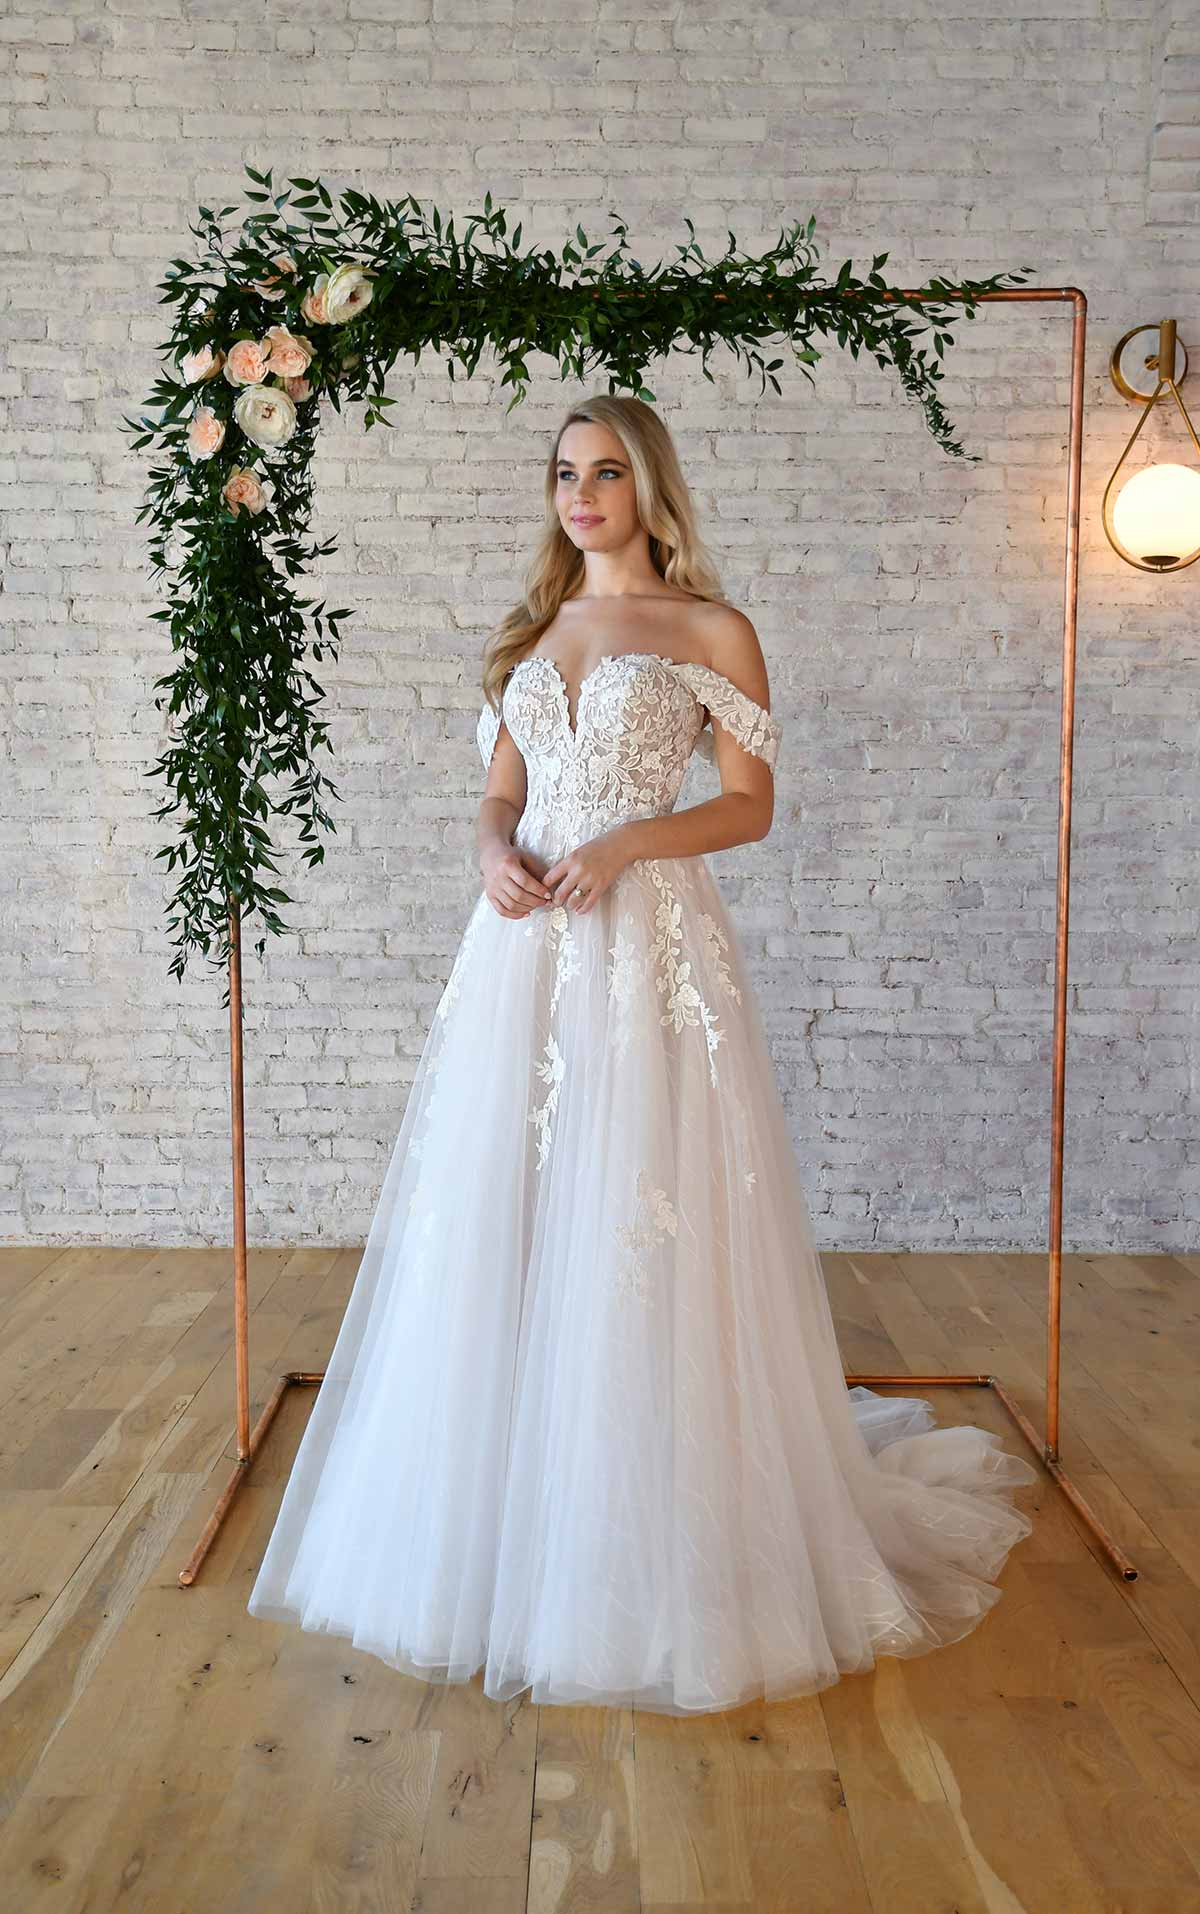 7372 Sweetheart Off-the-Shoulder Wedding Dress With Ballerina Skirt by Stella York